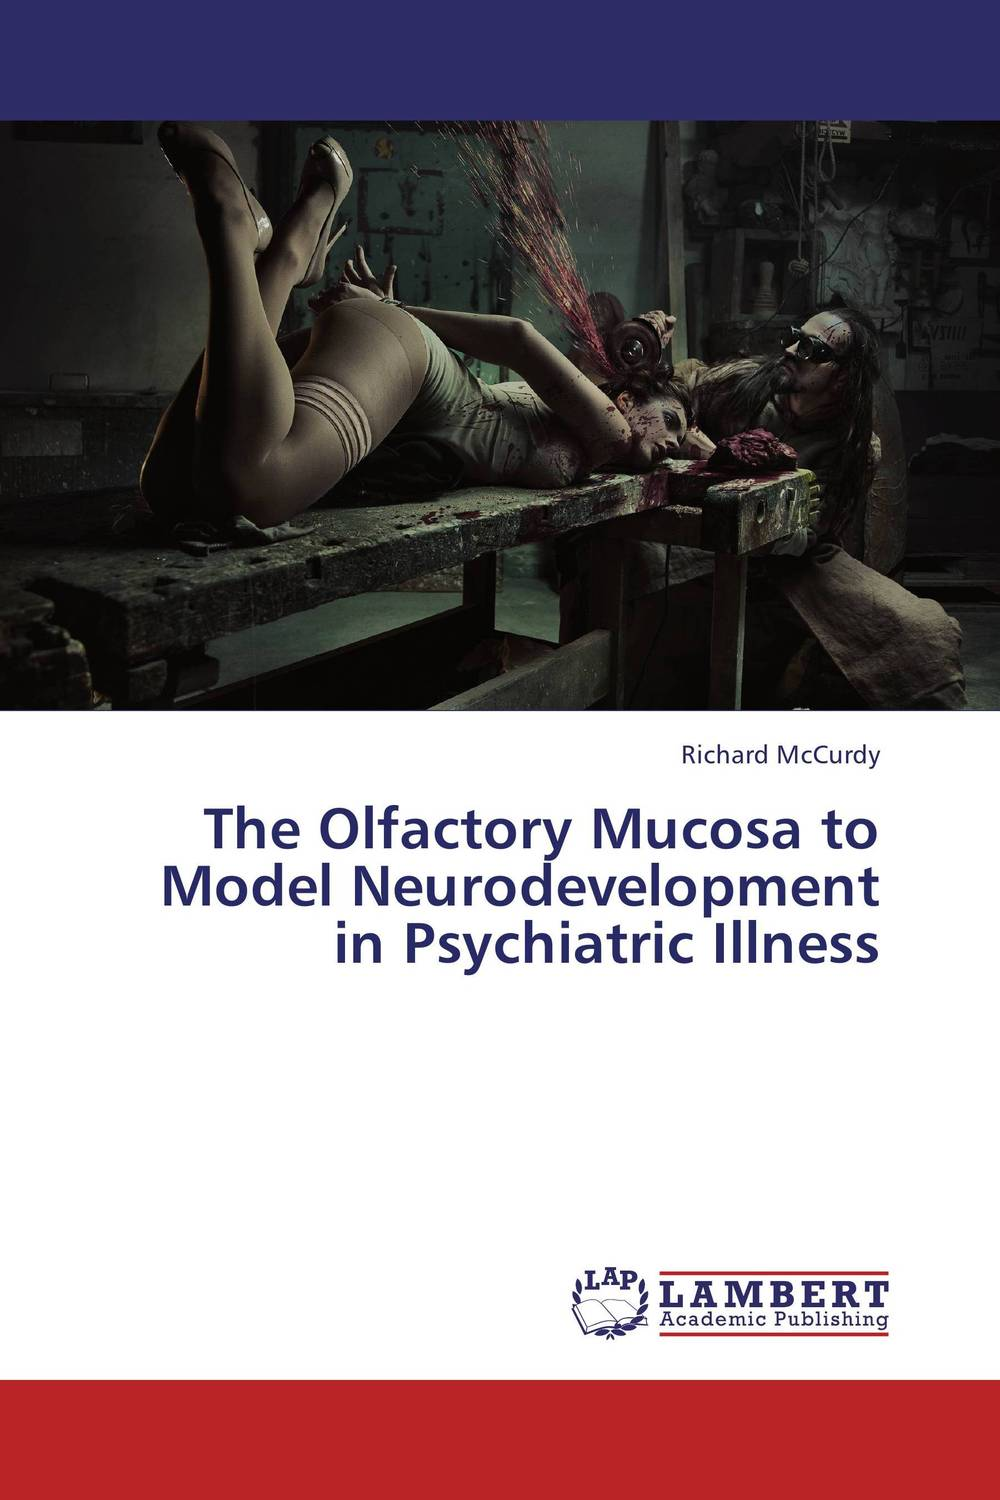 The Olfactory Mucosa to Model Neurodevelopment in Psychiatric Illness psychiatric disorders in postpartum period